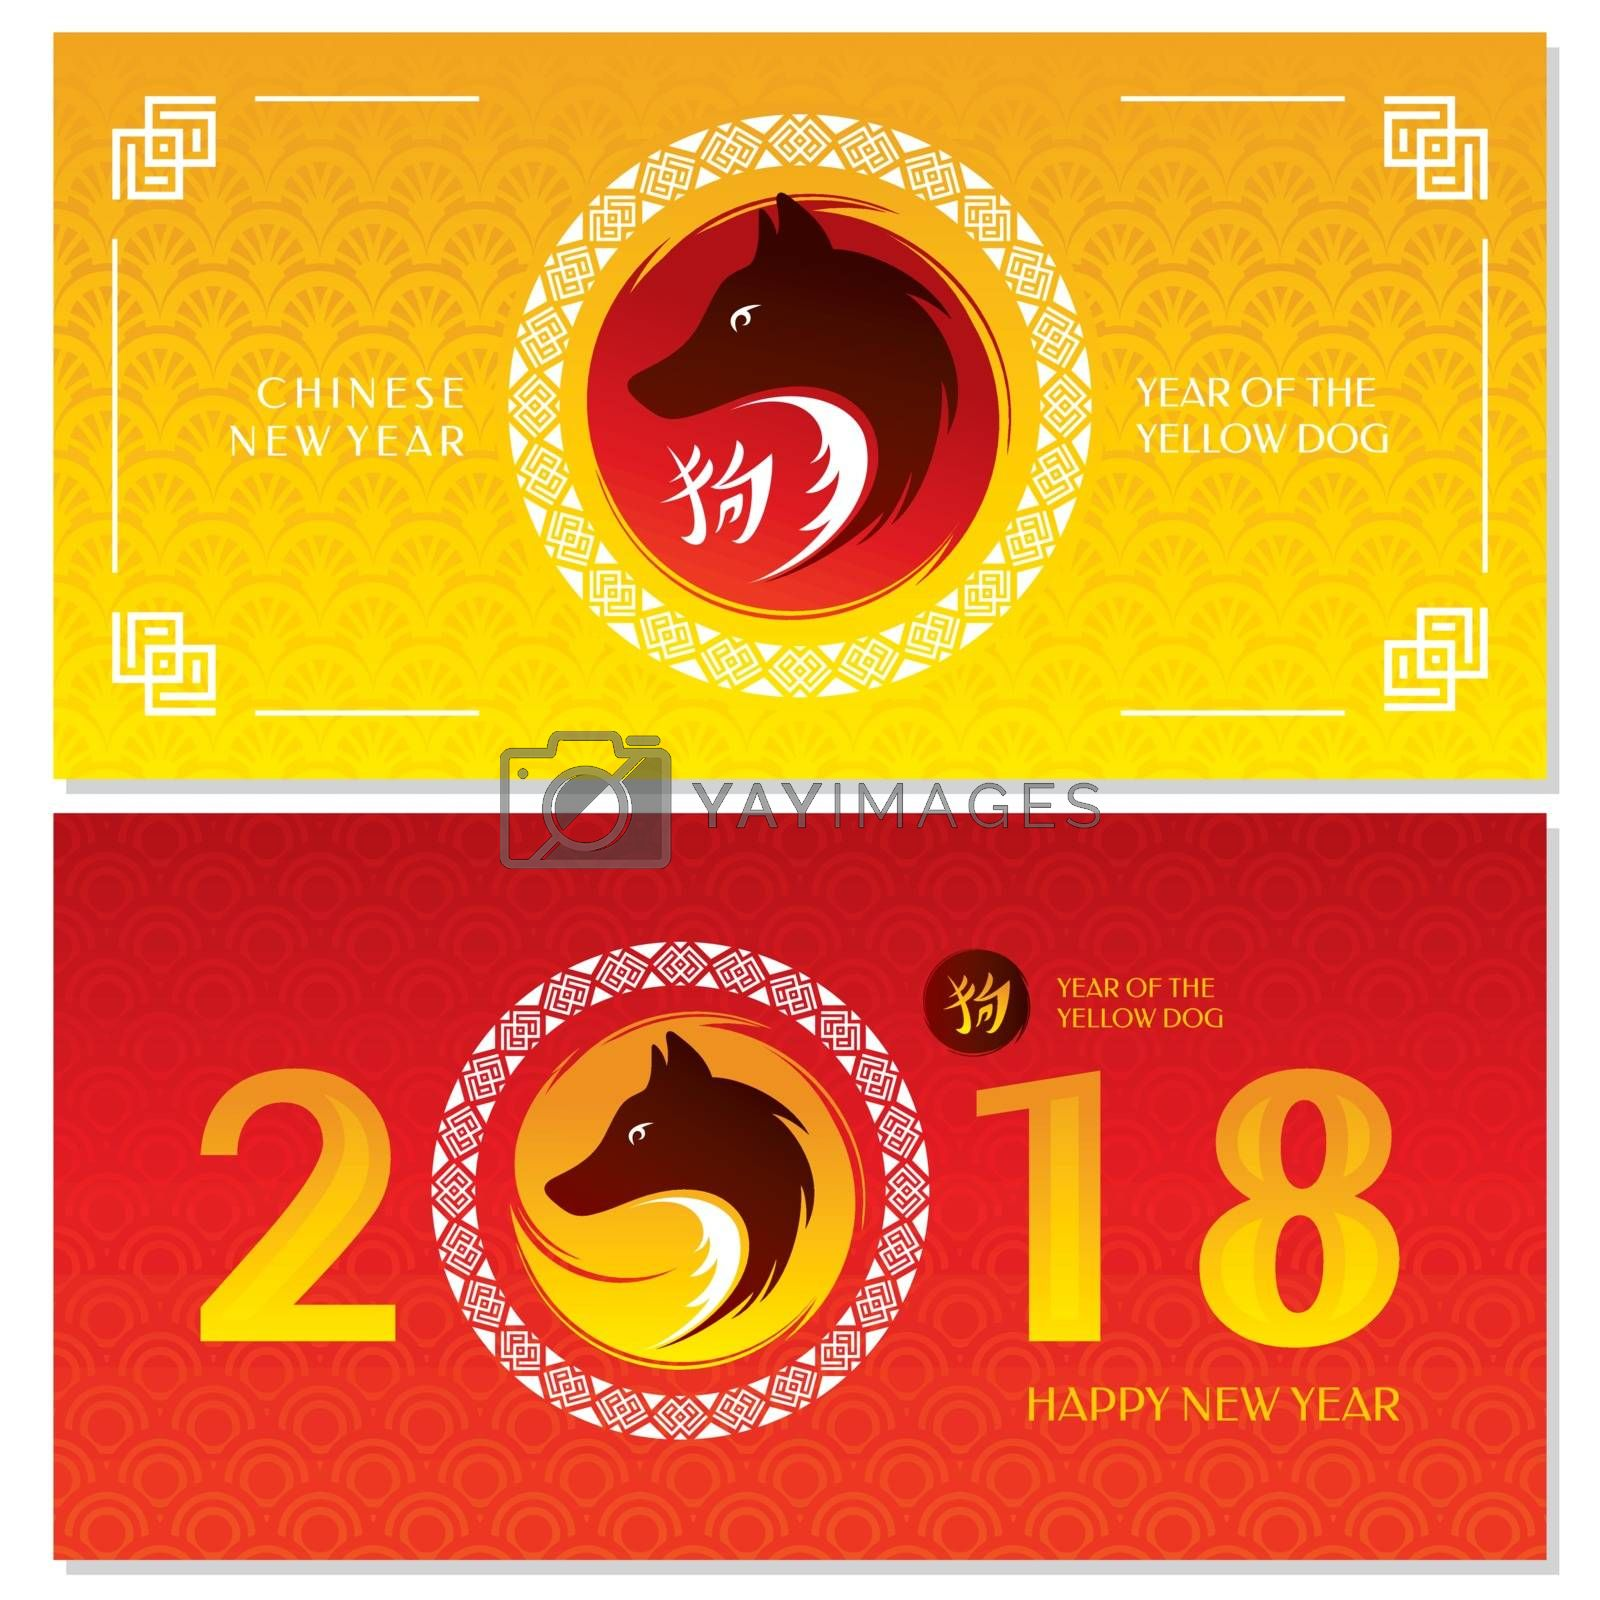 Chinese New Year Greeting Cards. 2018 Year of The Yellow Dog. Vector illustration.